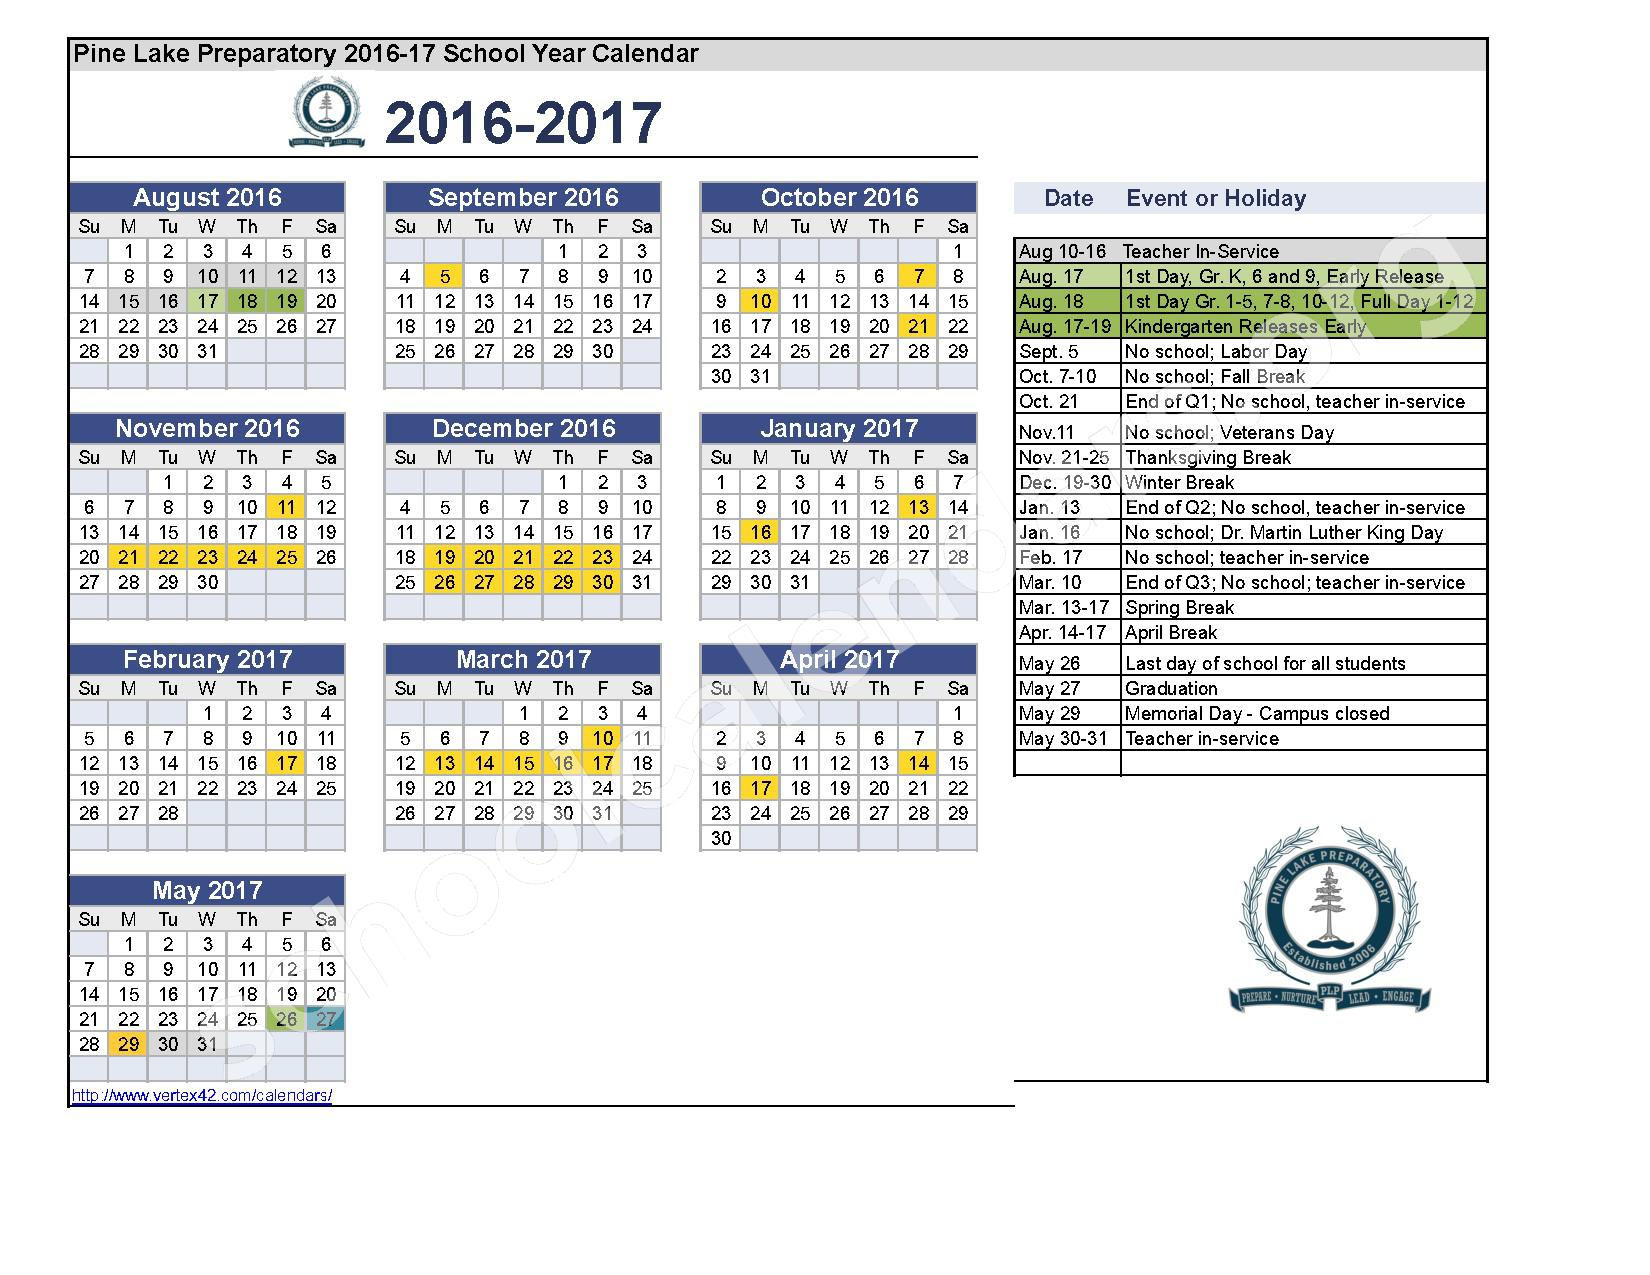 2016 - 2017 School Yer Calendar – Pine Lake Preparatory – page 1